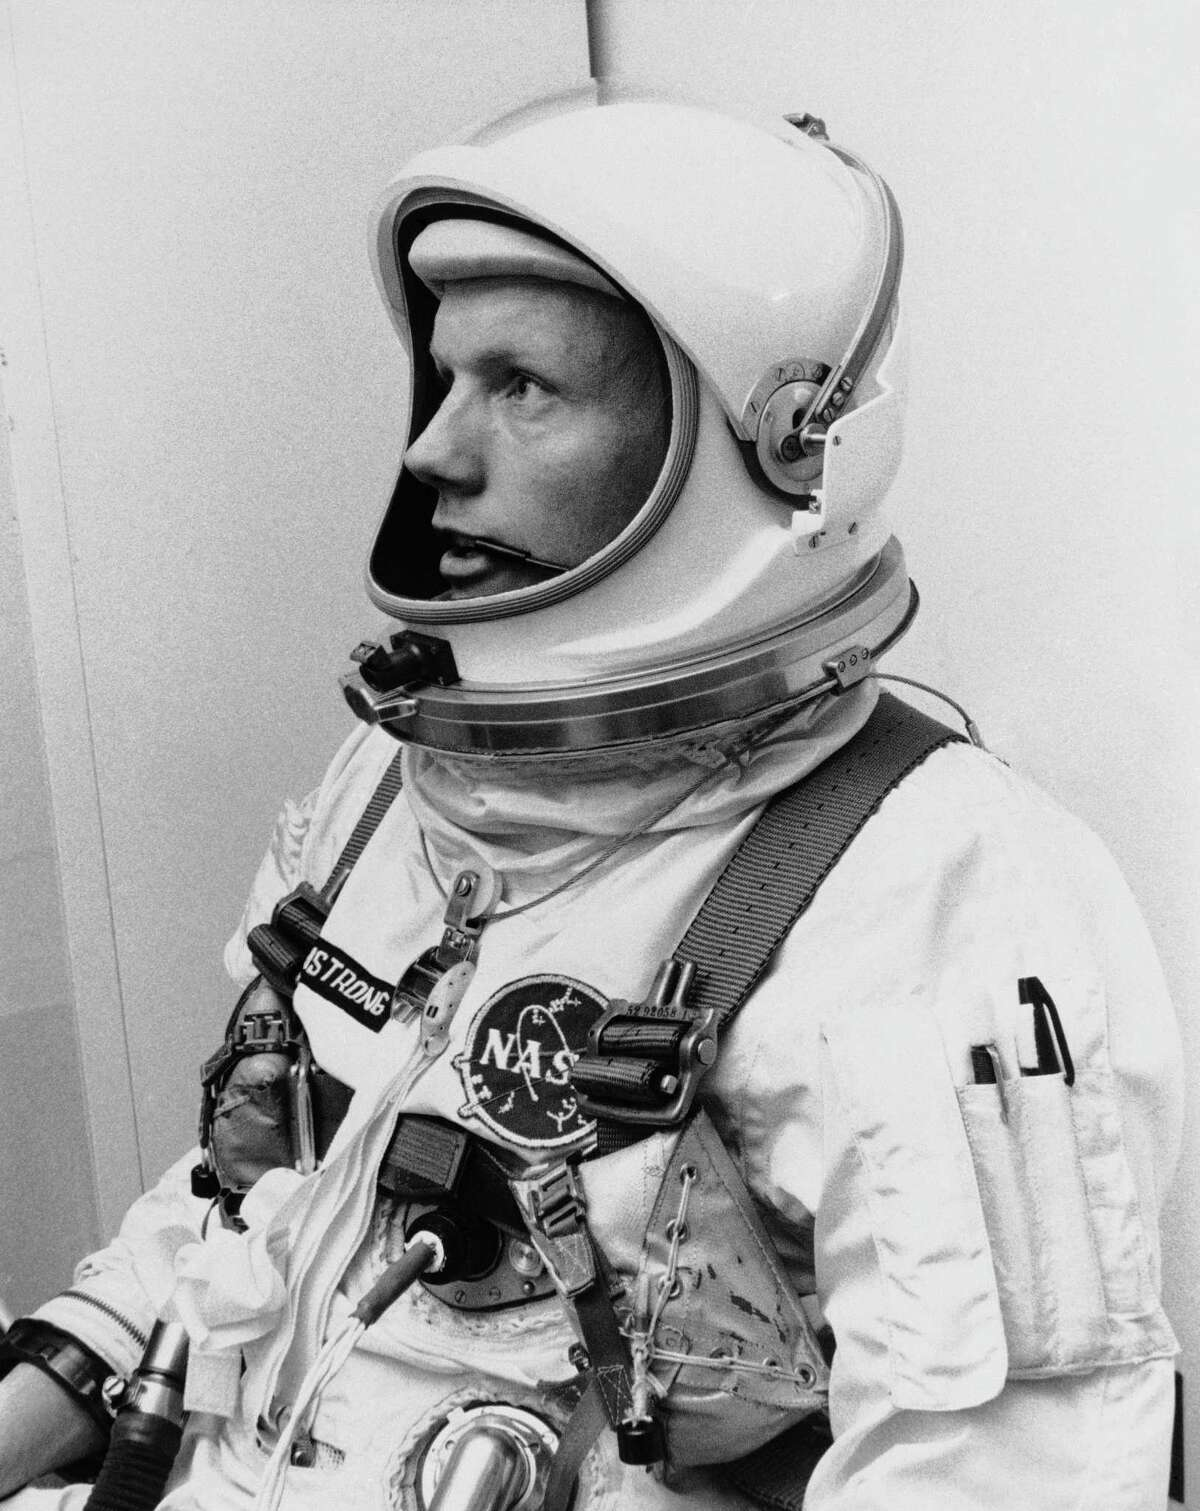 Before the Apollo 11 mission, Neil Armstrong participated in the Gemini 8 flight, where the Gemini capsule was connected to the target. This maneuver was an essential for the moon landing. Pictured: (March 6, 1966) Neil Armstrong is pictured before his Gemini VIII mission, in which he served as the command pilot. This information has been previously reported by the Houston Chronicle:Listen: Project Gemini acted as a bridge between Mercury, Apollo